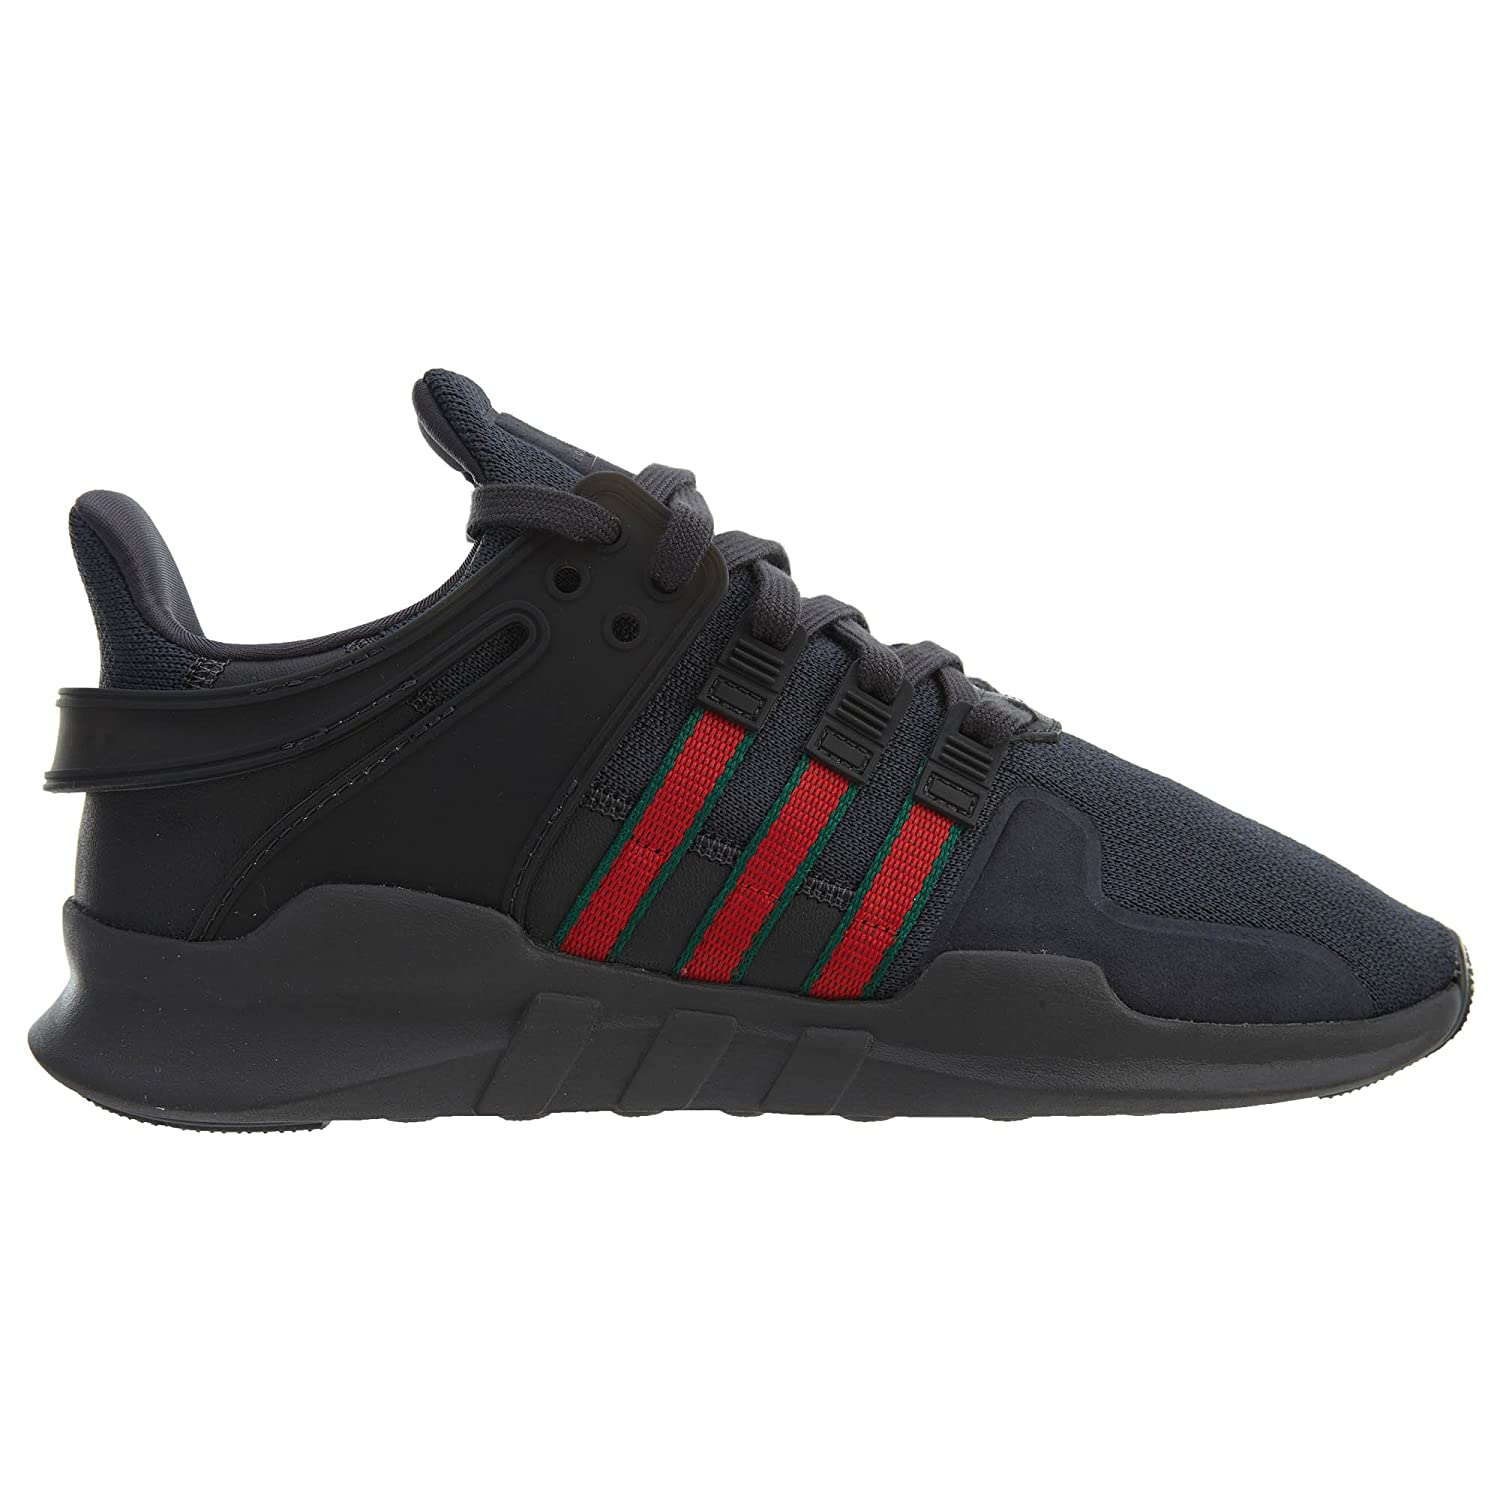 promo code ade7e a3685 Amazon.com   adidas Mens EQT Support Adv Athletic   Sneakers   Road Running